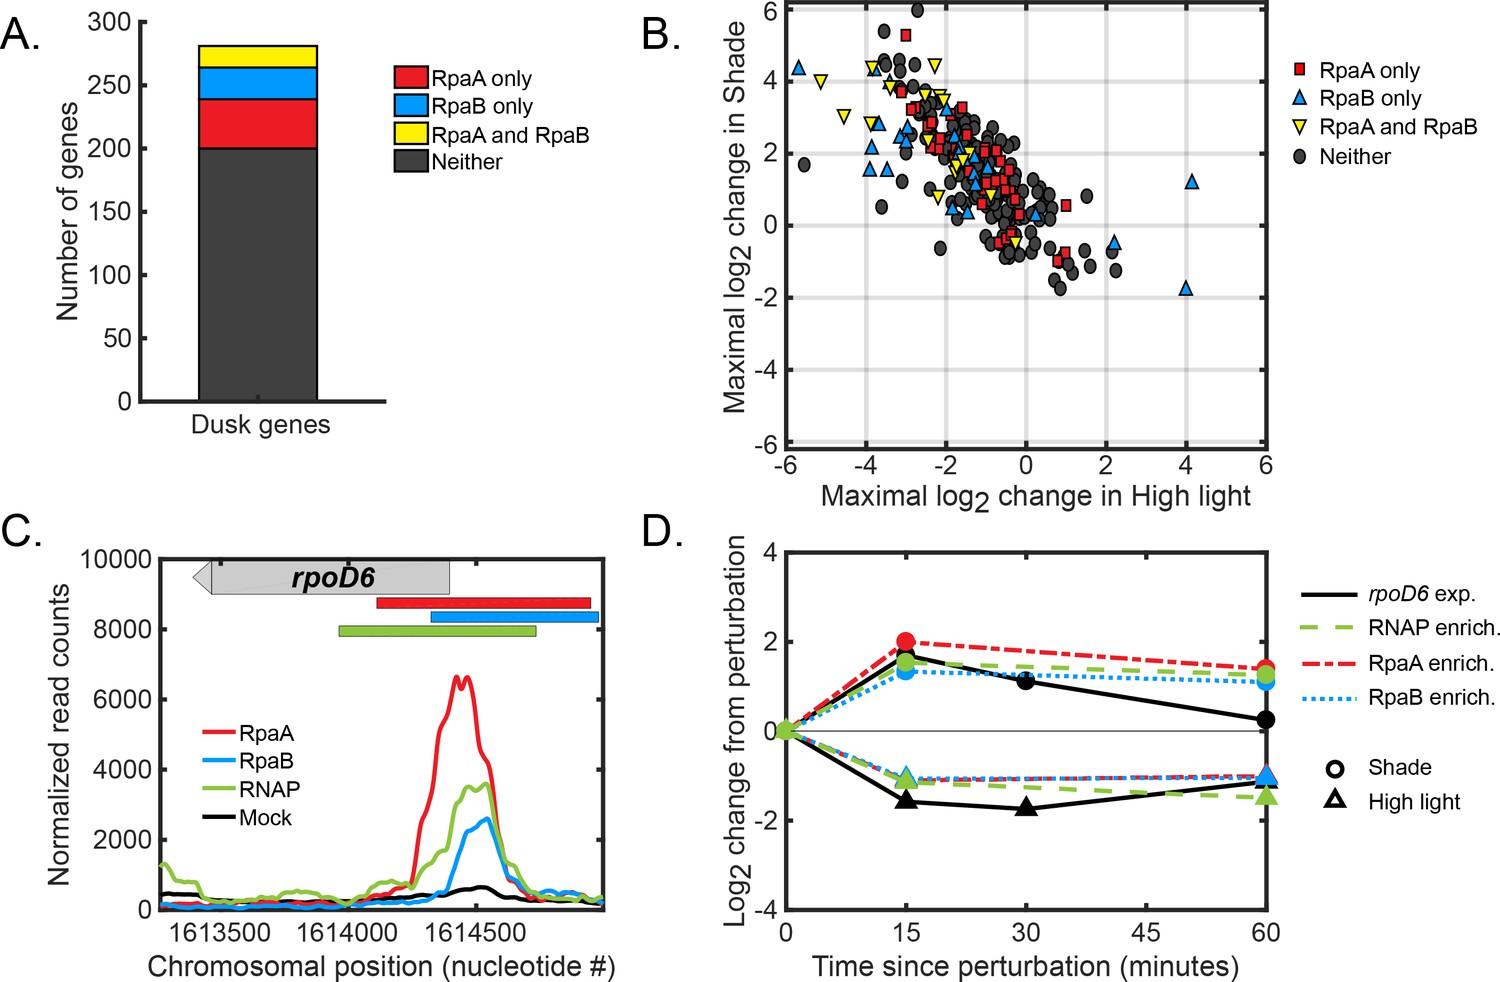 hight resolution of global regulation of dusk gene expression in response to light changes